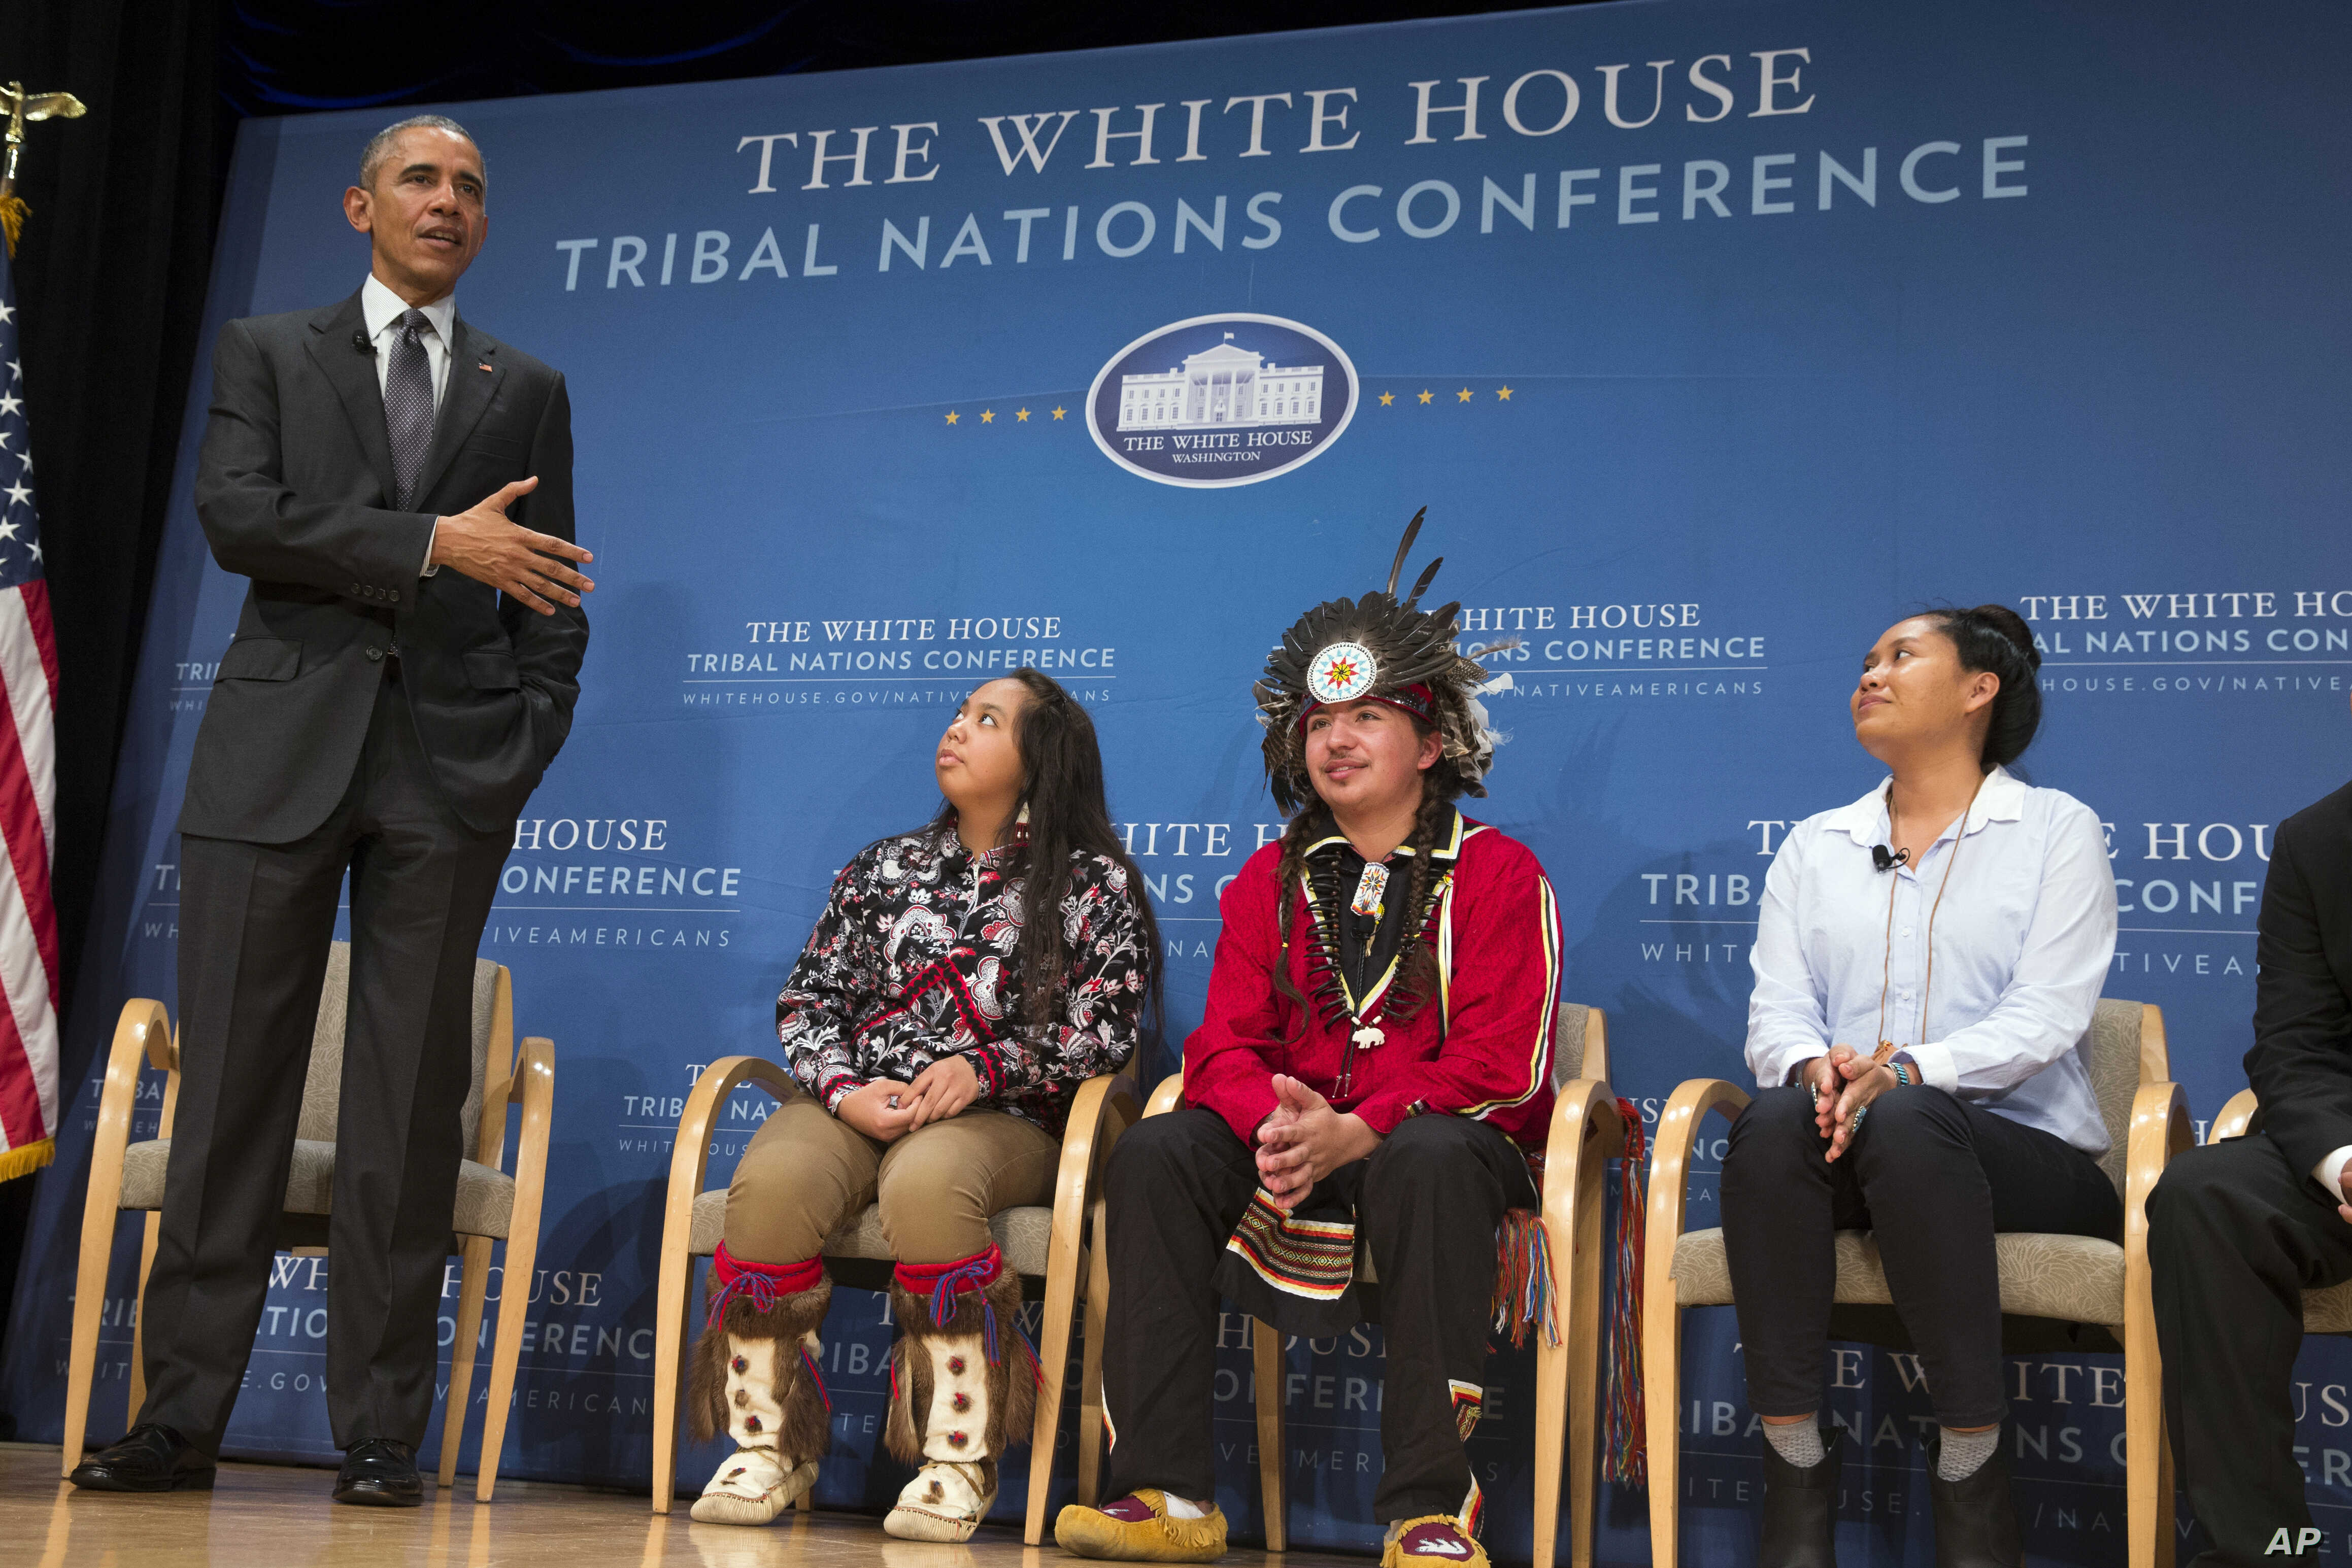 President Barack Obama speaks as, from left, Tatiana Ticknor of the Yup'ik/Tlingit/Dena'ina, Brayden White of the St. Regis Mohawk Tribe and Blossom Johnson of the Navajo Nation listen during the 2015 White House Tribal Nations Conference, Nov. 5, 20